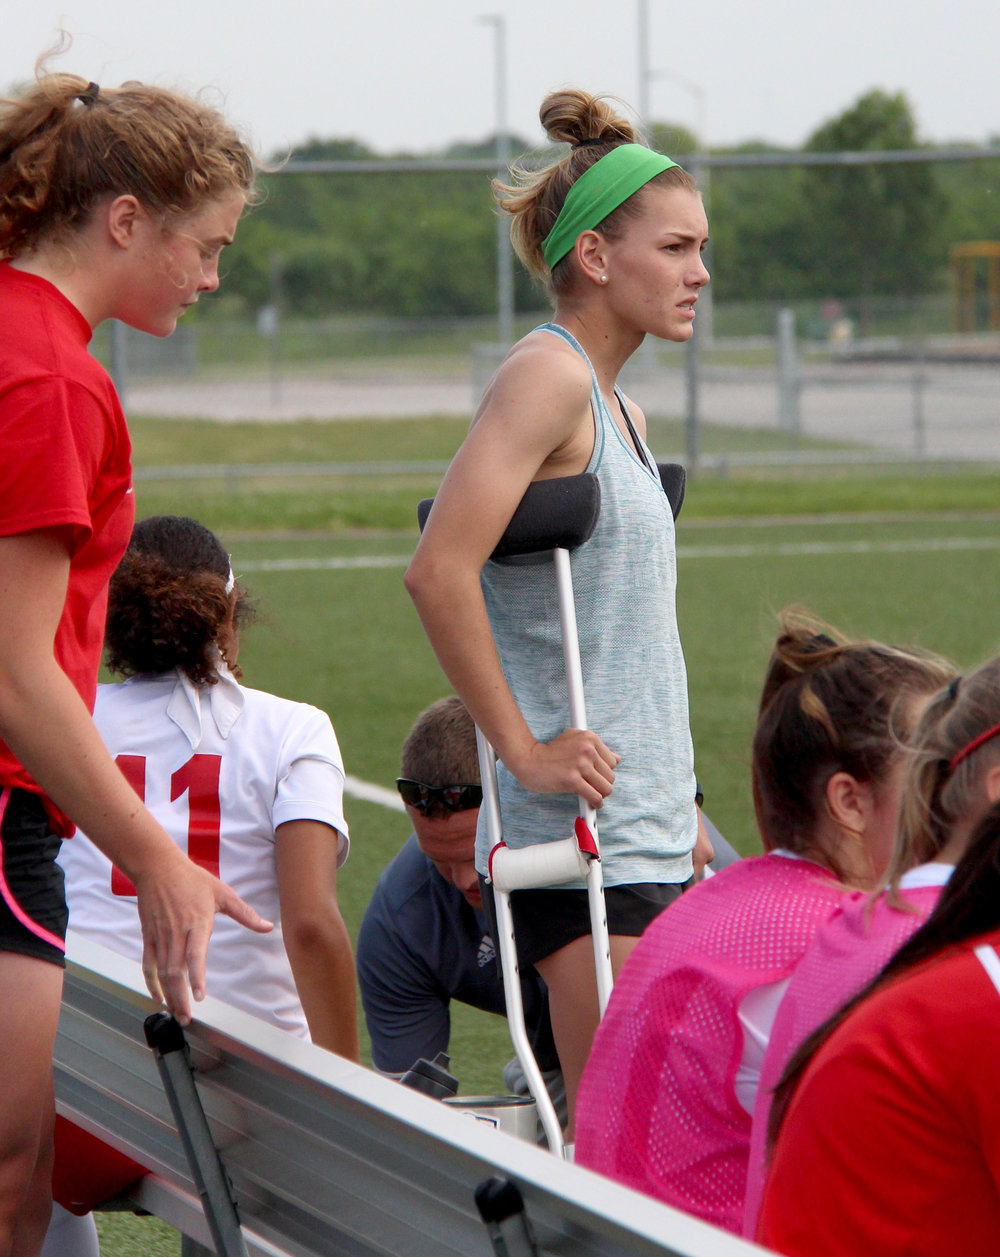 ROSS MARTIN/Citizen photo Park Hill senior Jenna Winebrenner watched the Class 4 District 16 championship game from the bench Thursday, May 18 at North Kansas City District Activities Complex in Kansas City, Mo. She suffered a season-ending leg injury 10 days earlier.